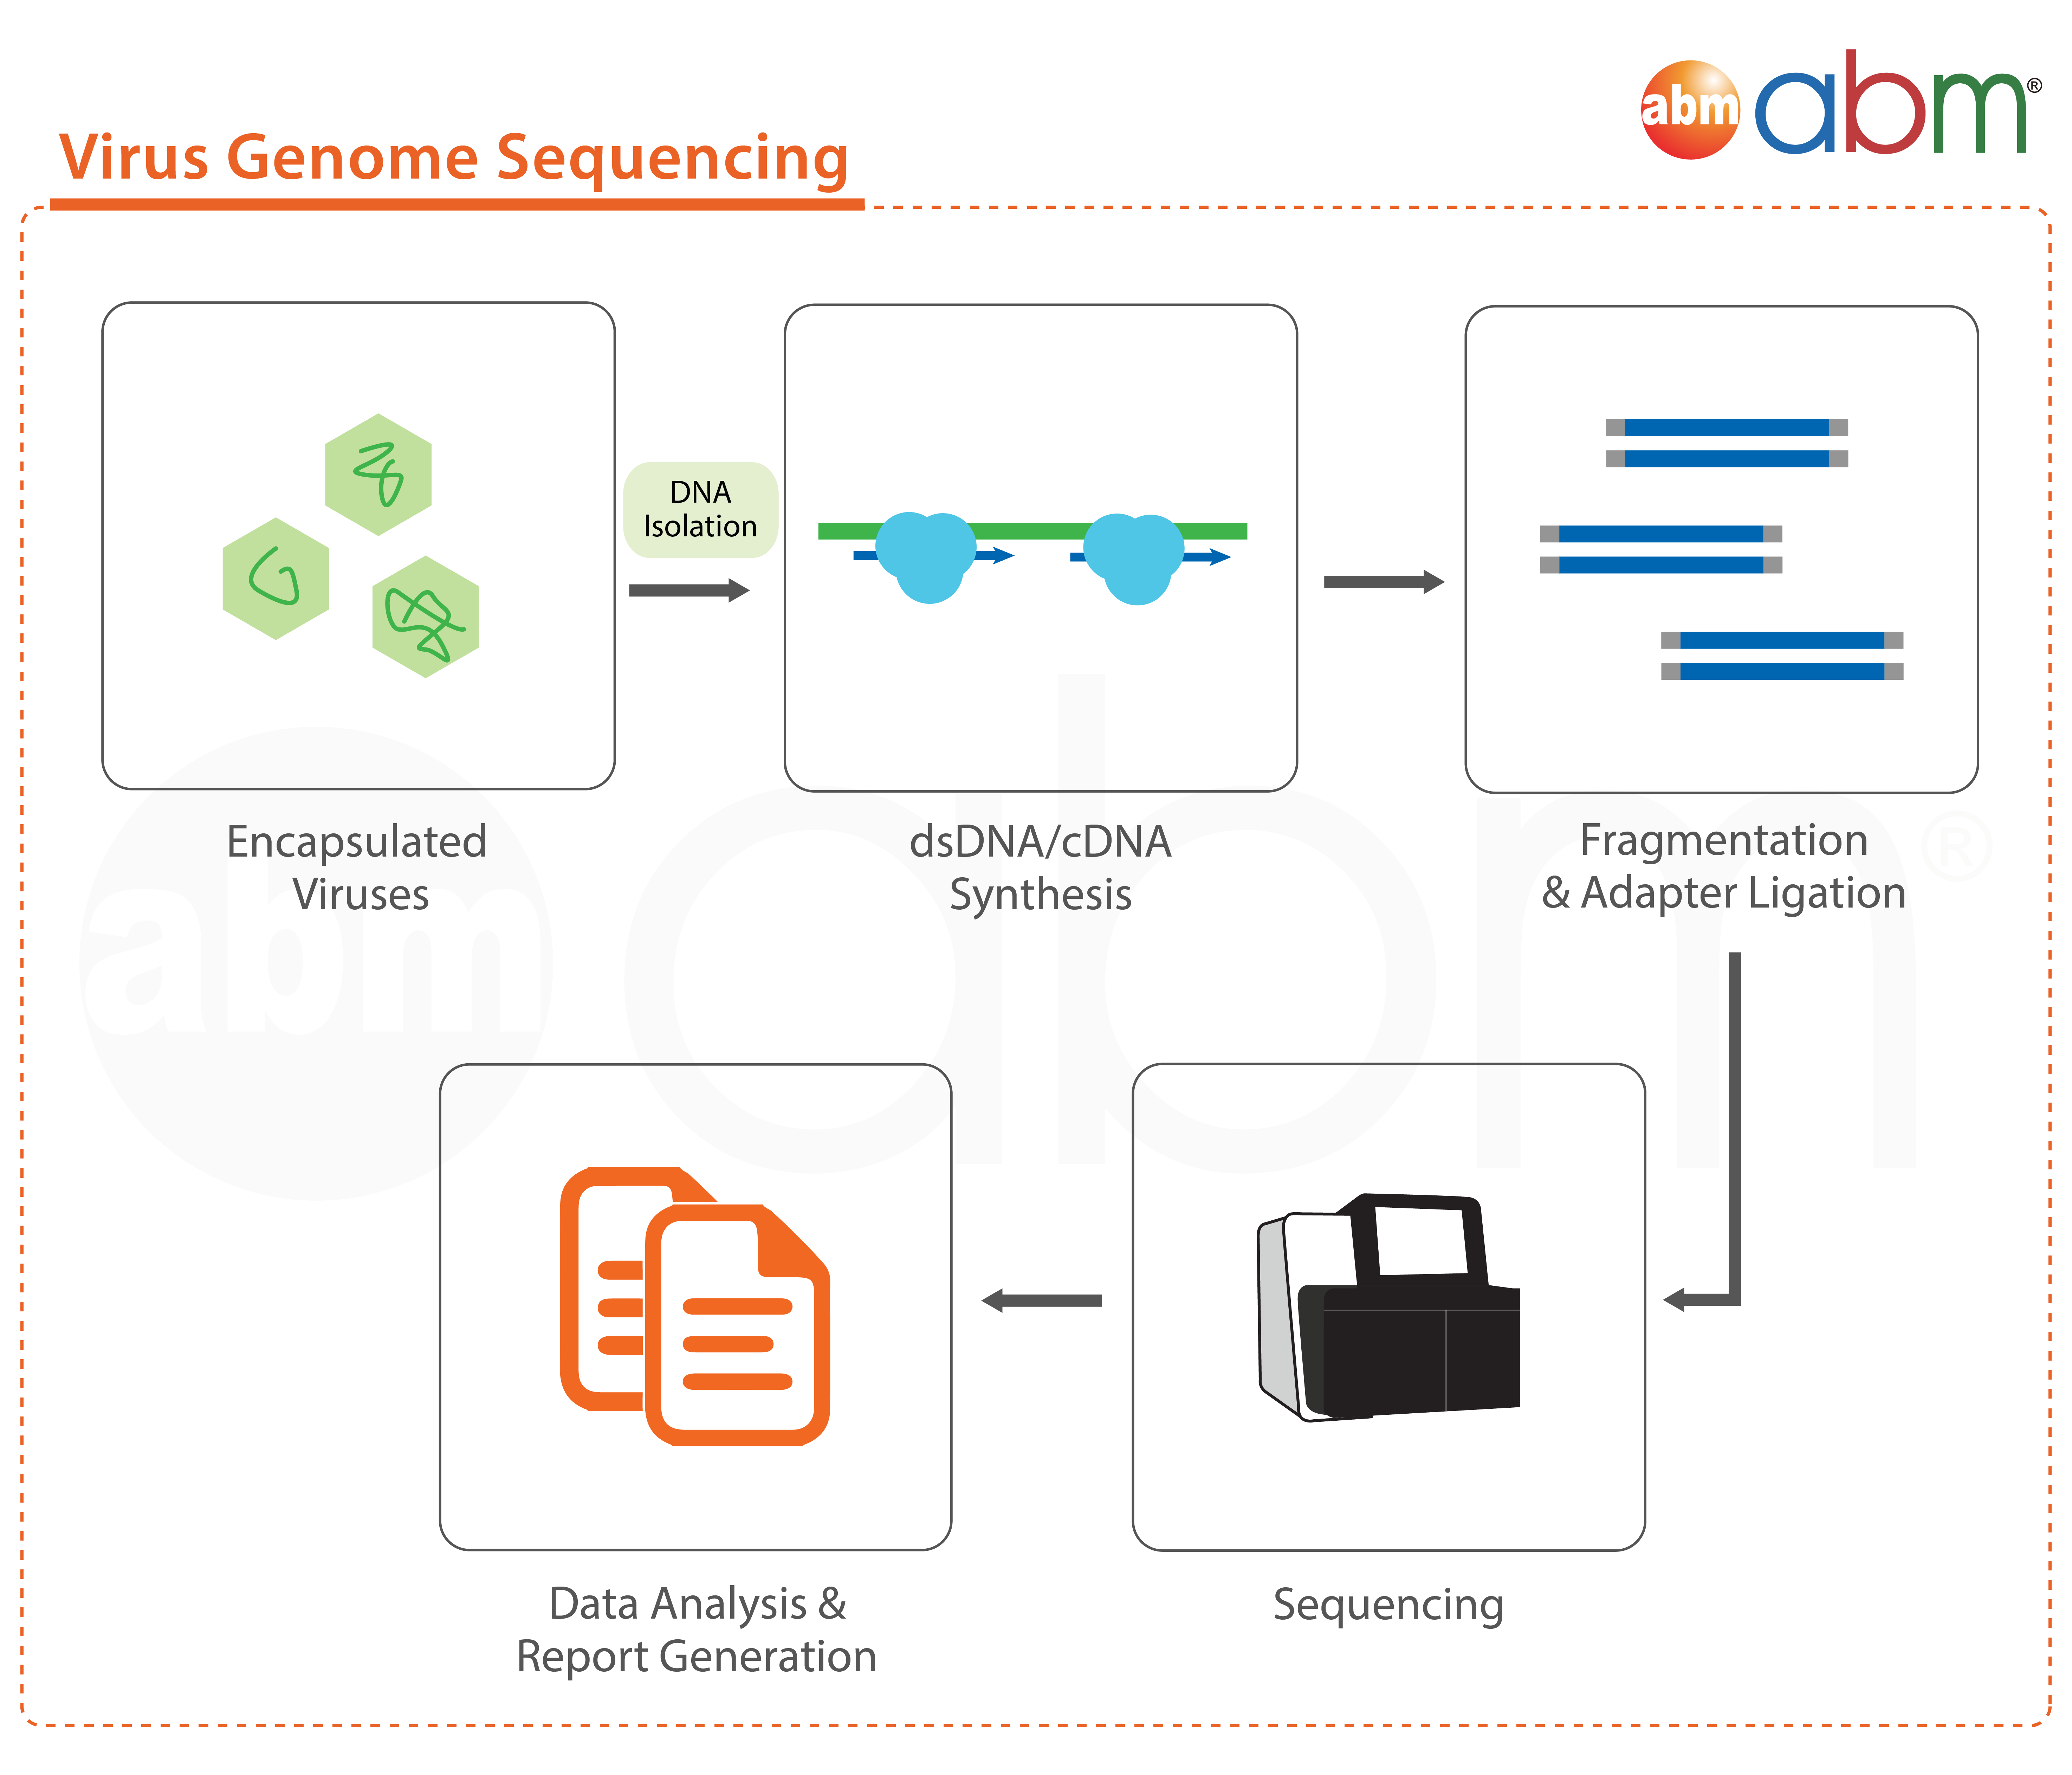 abm Virus Genome Sequencing